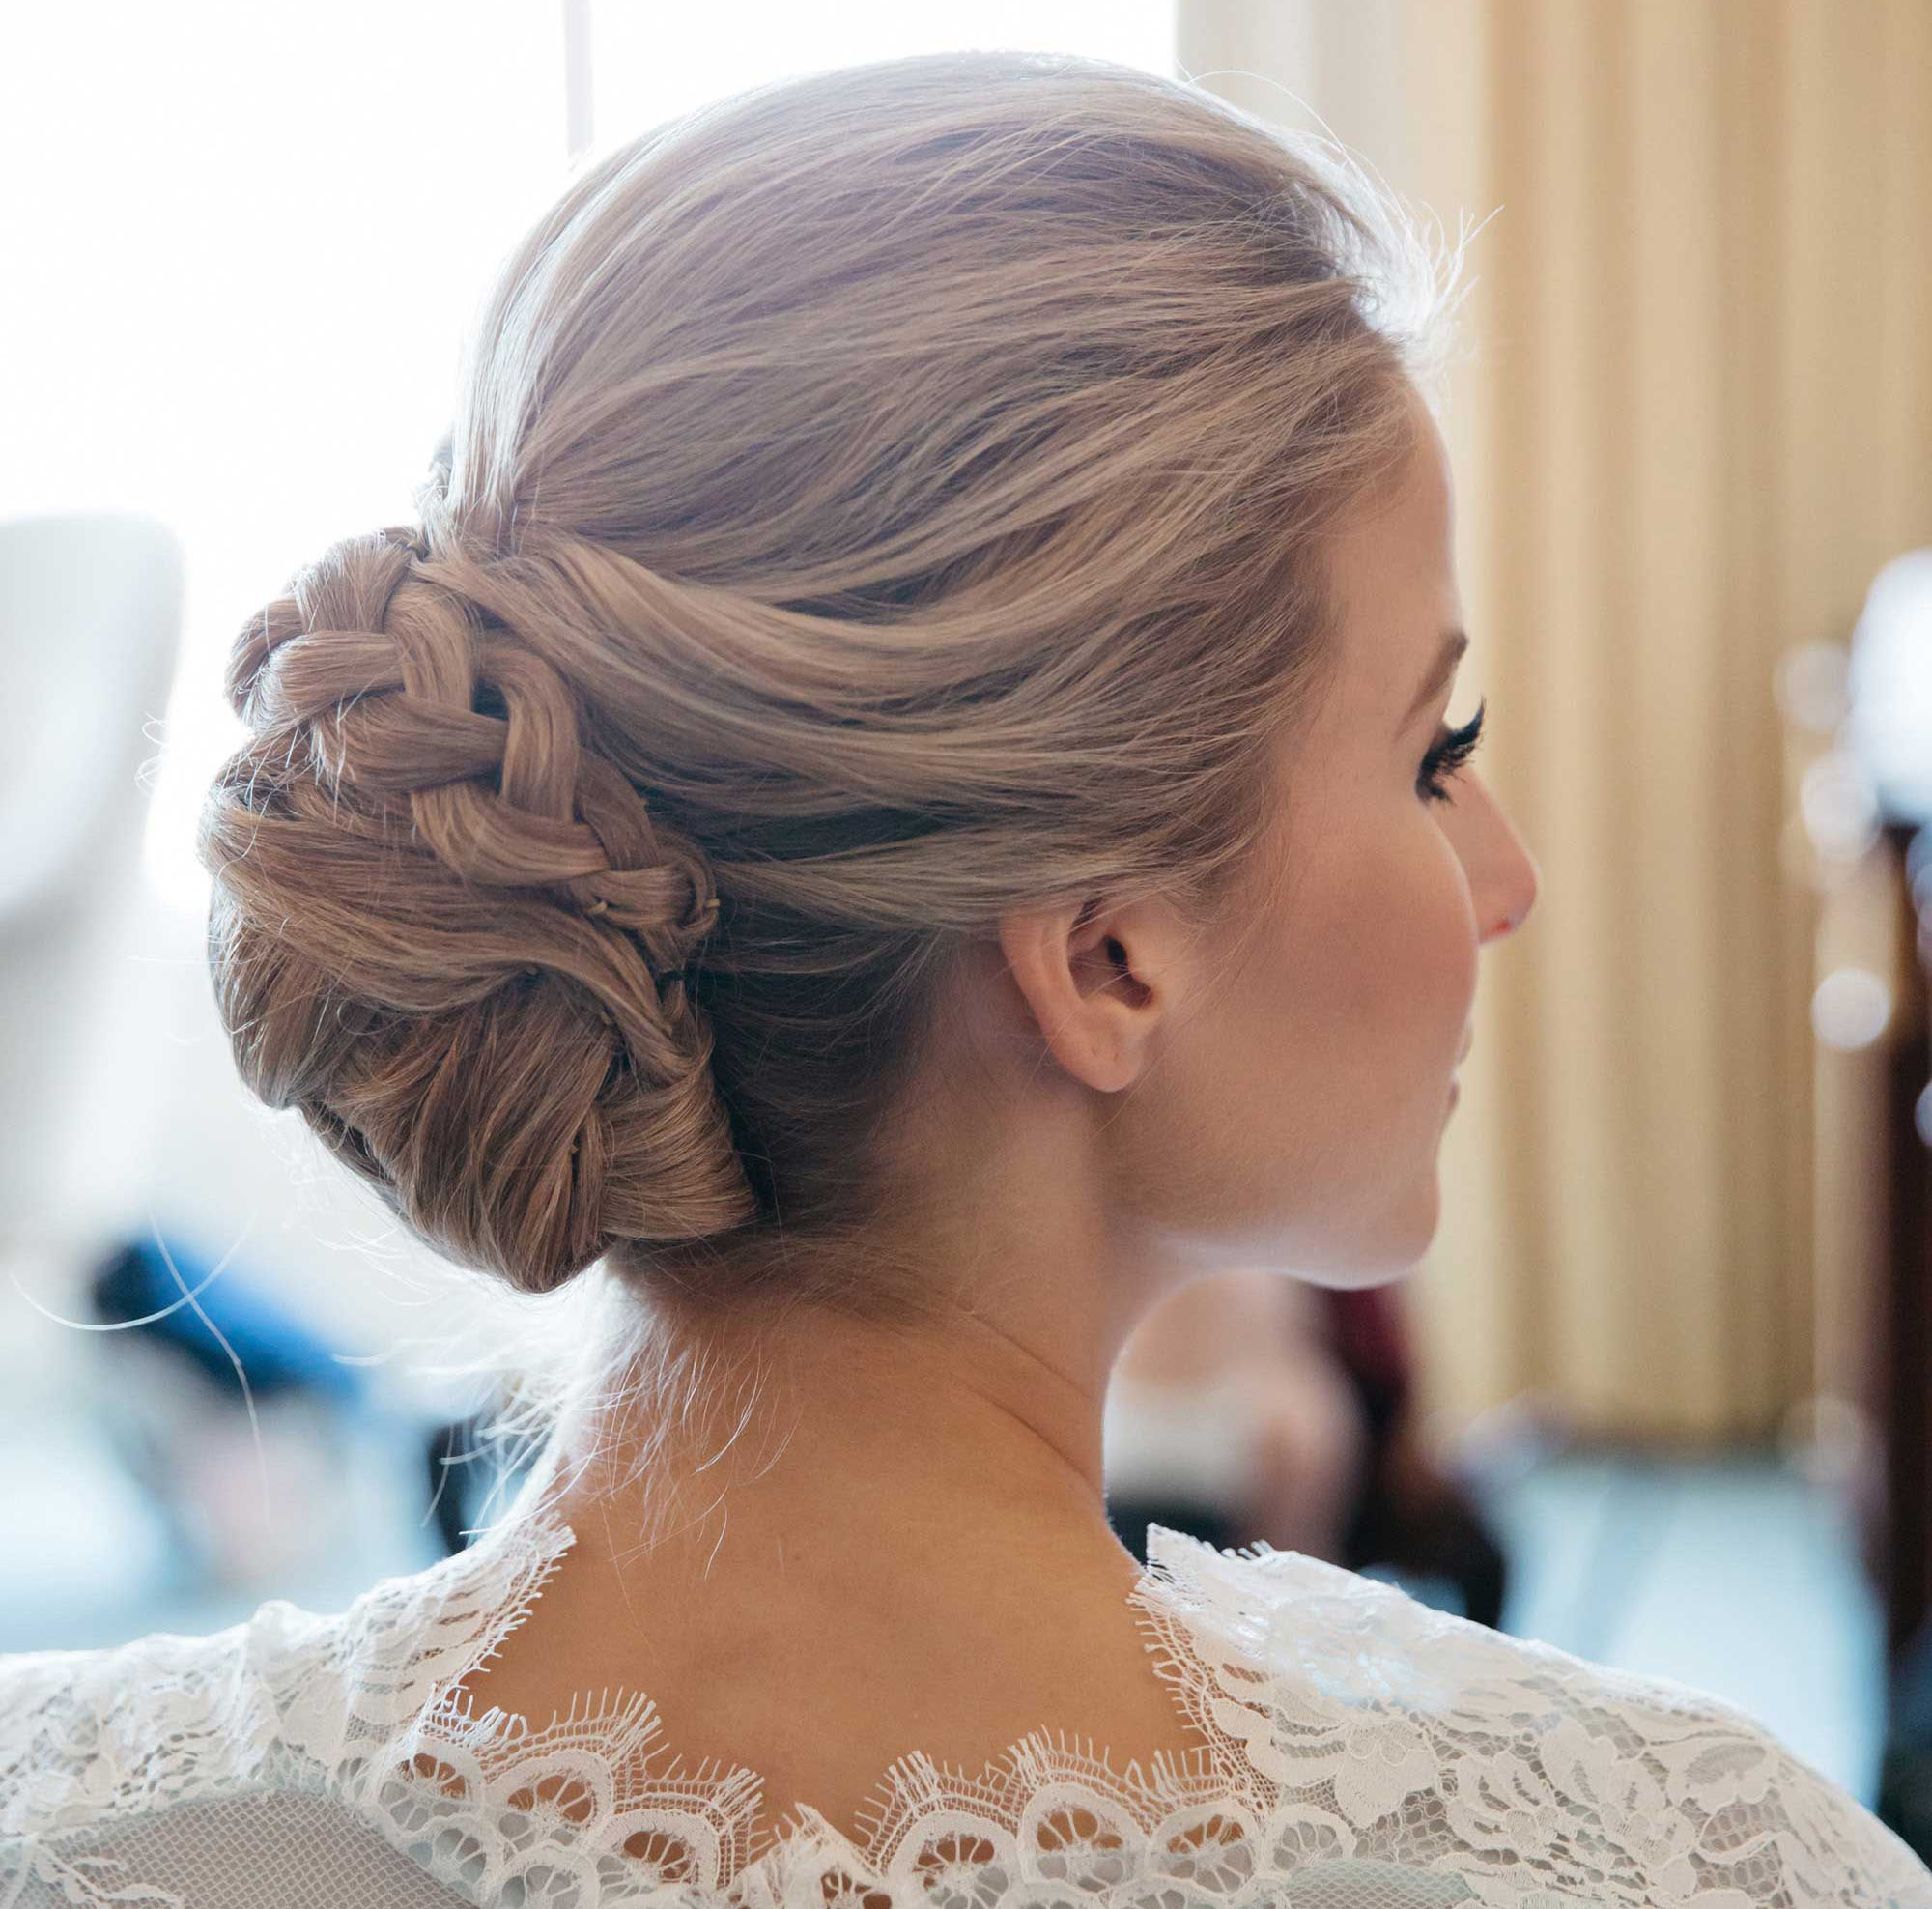 Stupendous Braided Hairstyles 5 Ideas For Your Wedding Look Inside Weddings Hairstyles For Women Draintrainus